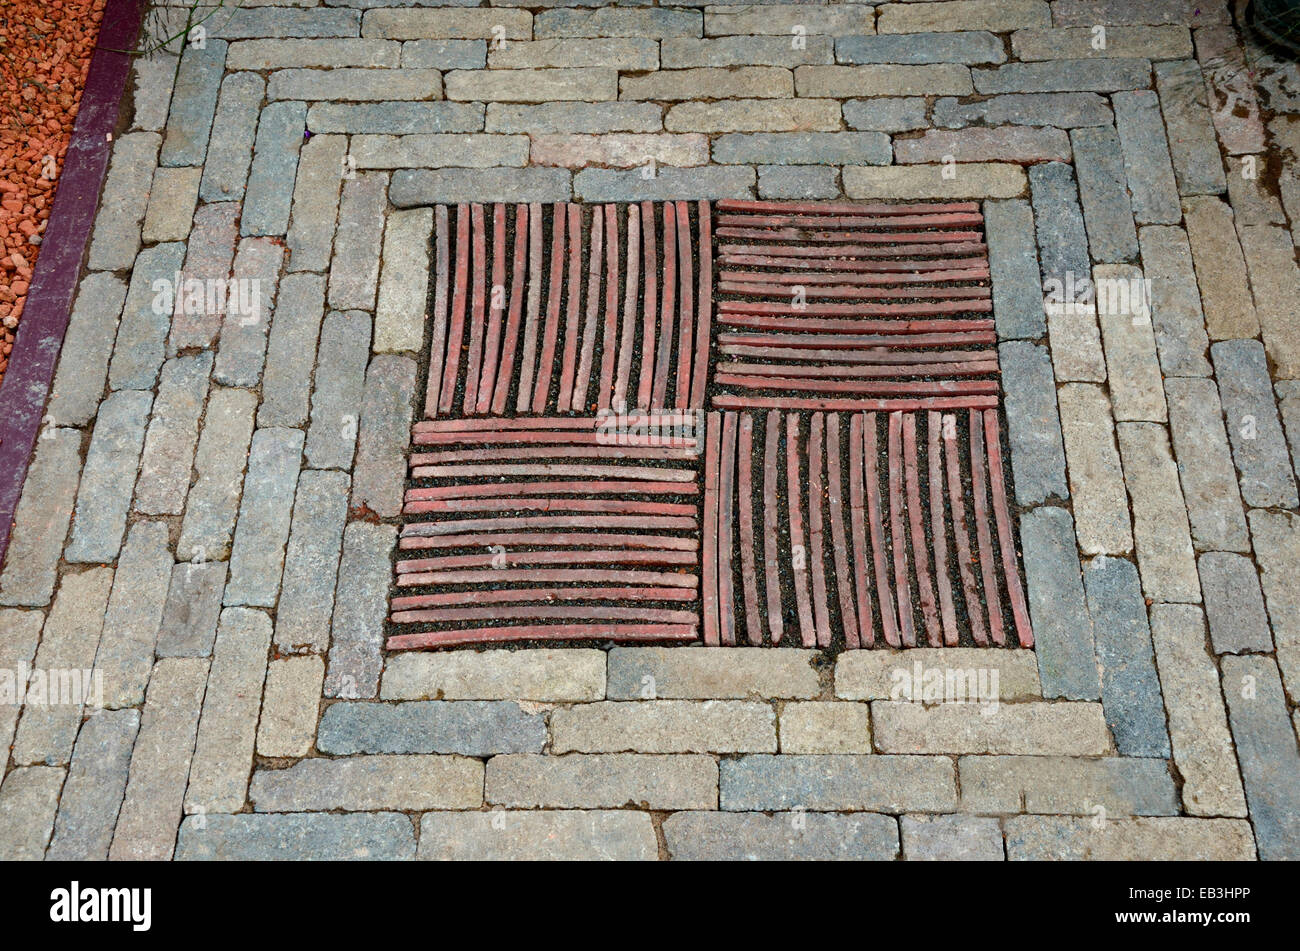 A close up view of decorative mosaic insert of stones bricks and tiles in a garden pathway - Stock Image